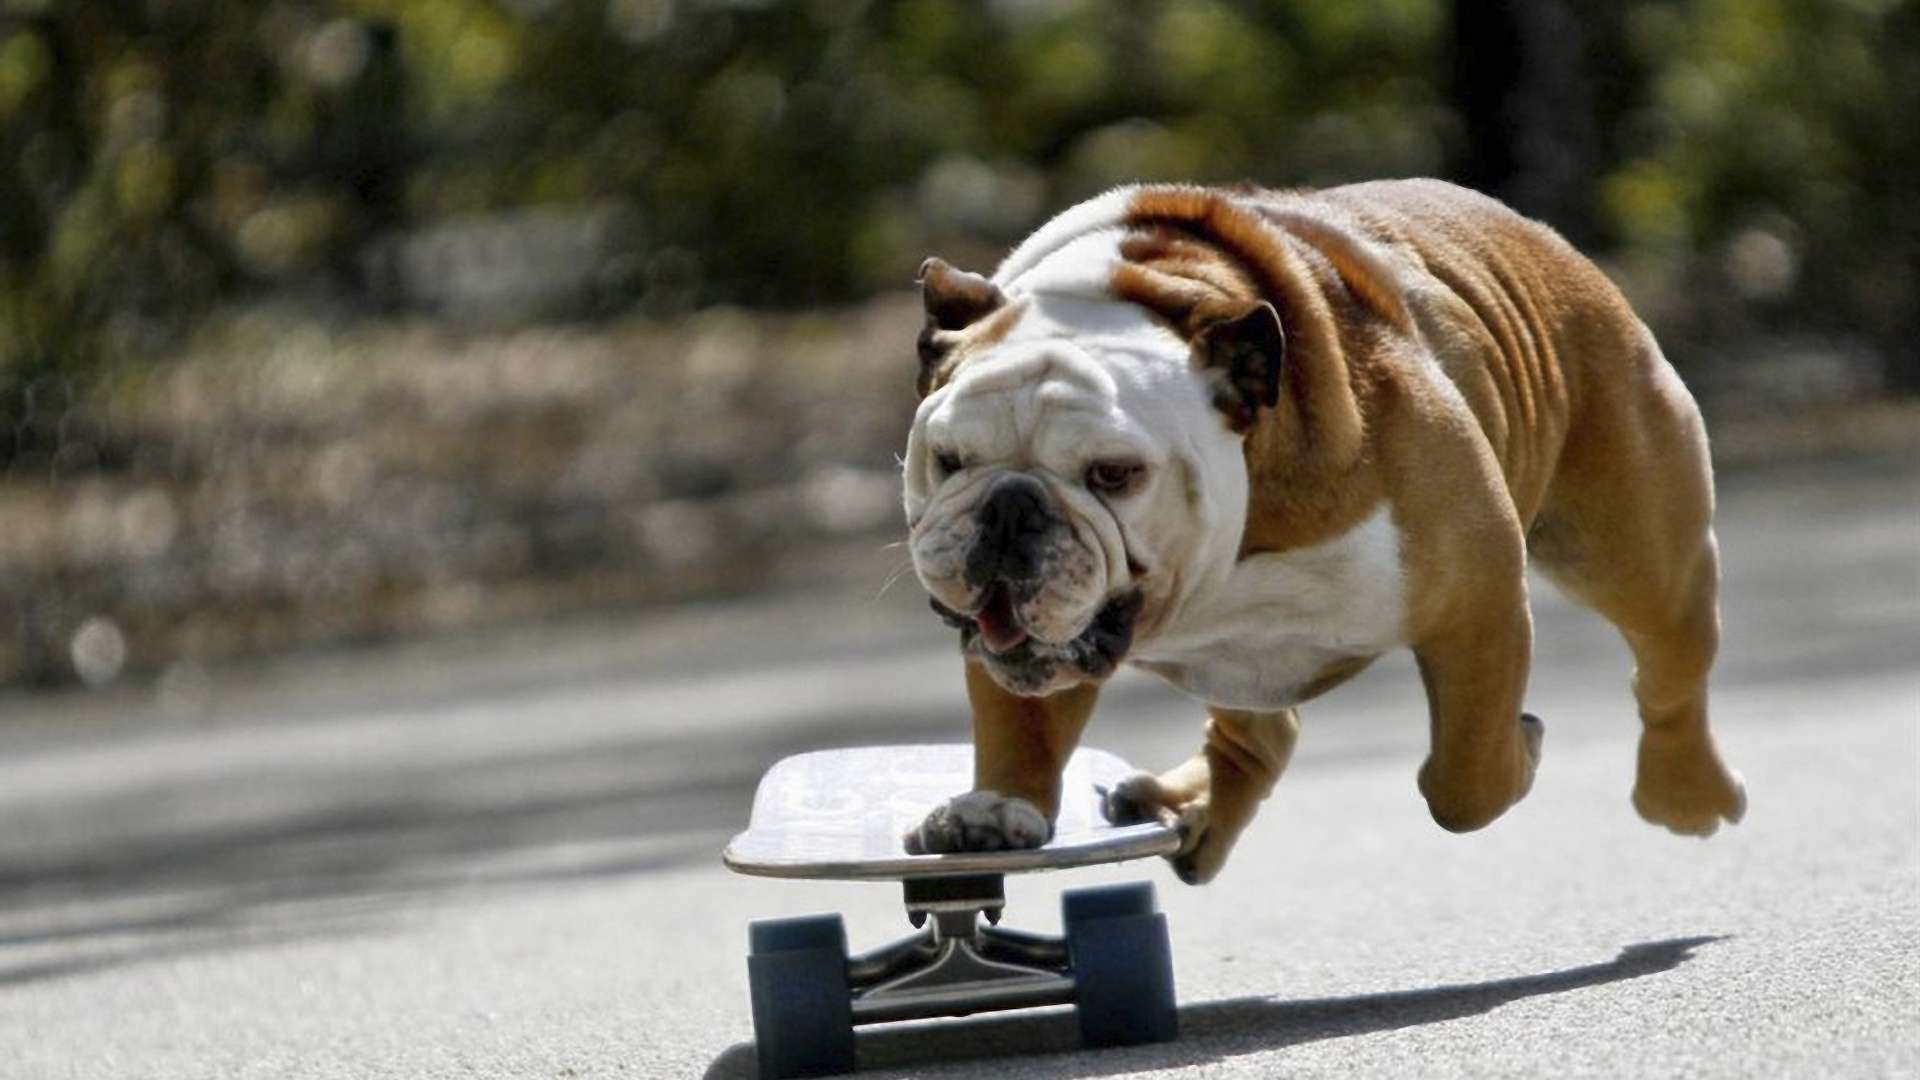 Bulldog-Playing-Skateboard-Hd-1080p-wallpaper-wpc5803095